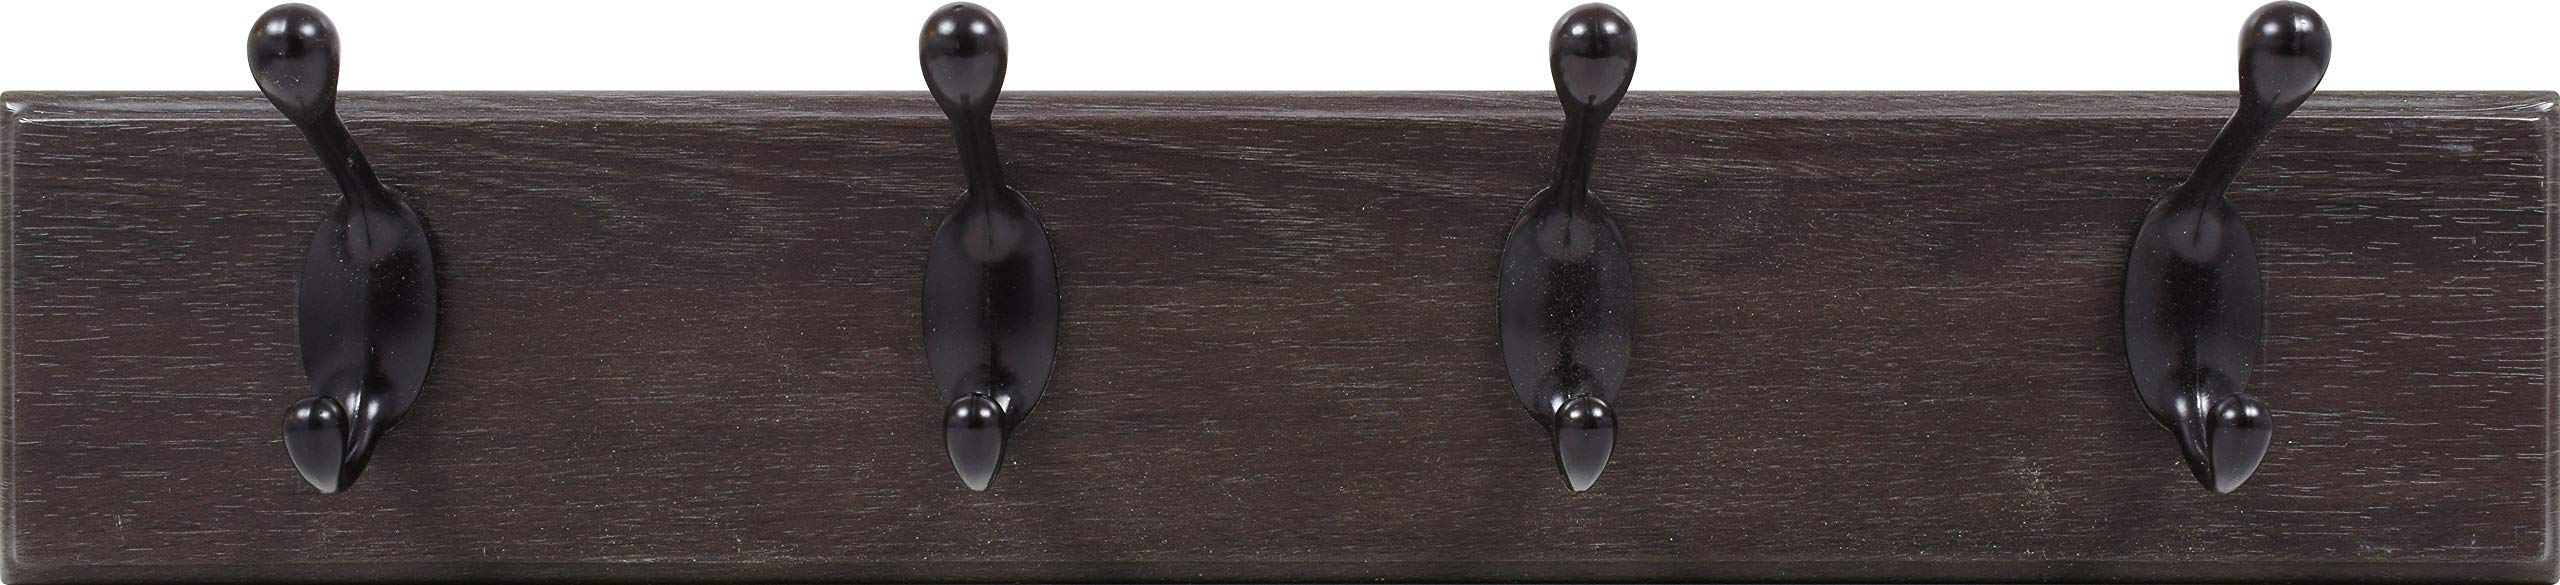 HIGH & MIGHTY 515715 Tool Free Coat Rack with 4 Hooks, 18'', Espresso